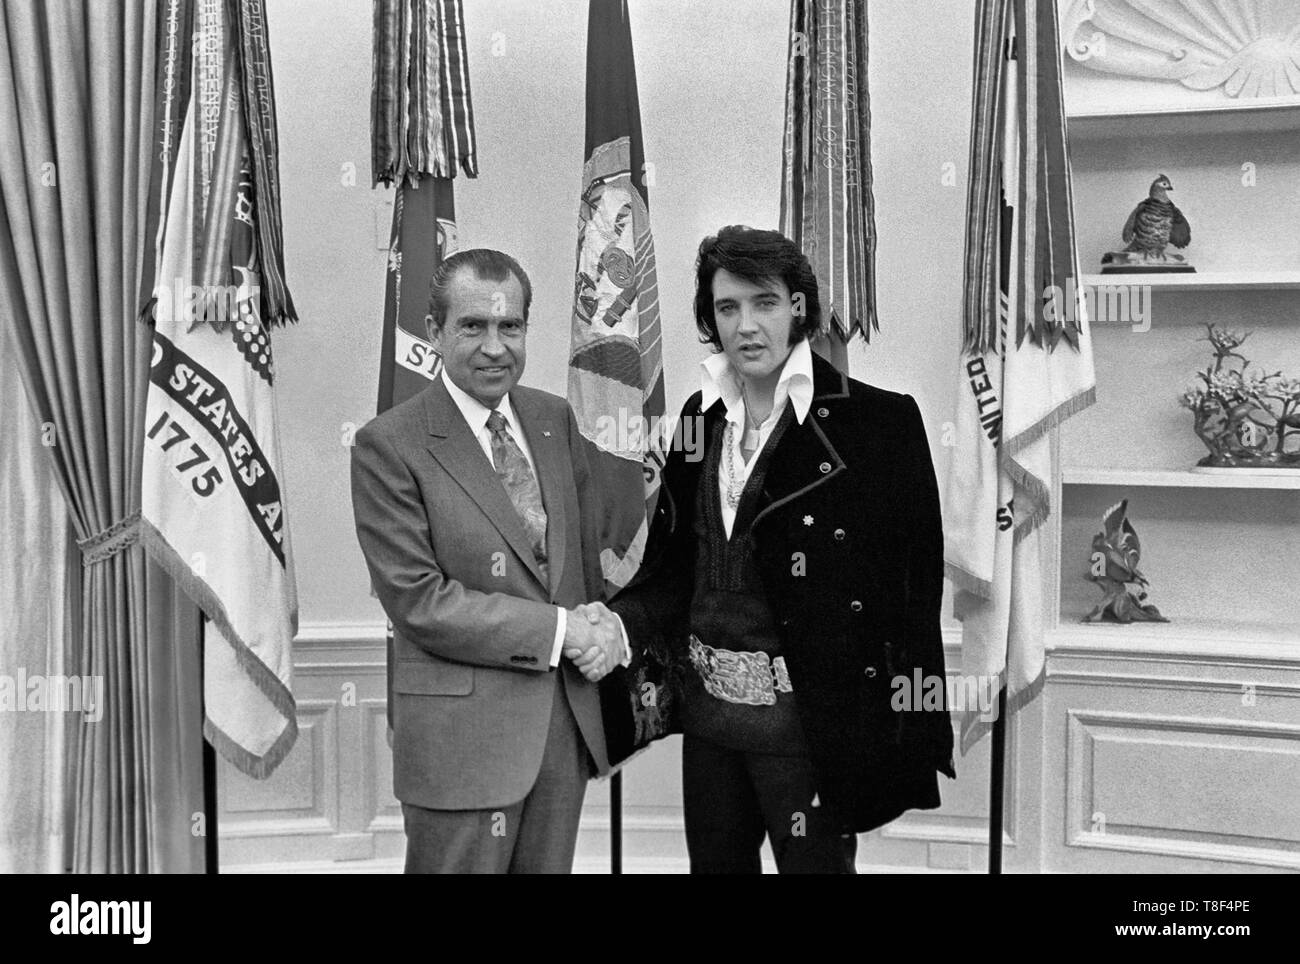 Elvis Presley meeting Richard Nixon. On December 21, 1970, at his own request, Presley met then-President Richard Nixon in the Oval Office of The White House. Elvis is on the right. Waggishly, this picture is said to be 'of the two greatest recording artists of the 20th century'. - Stock Image